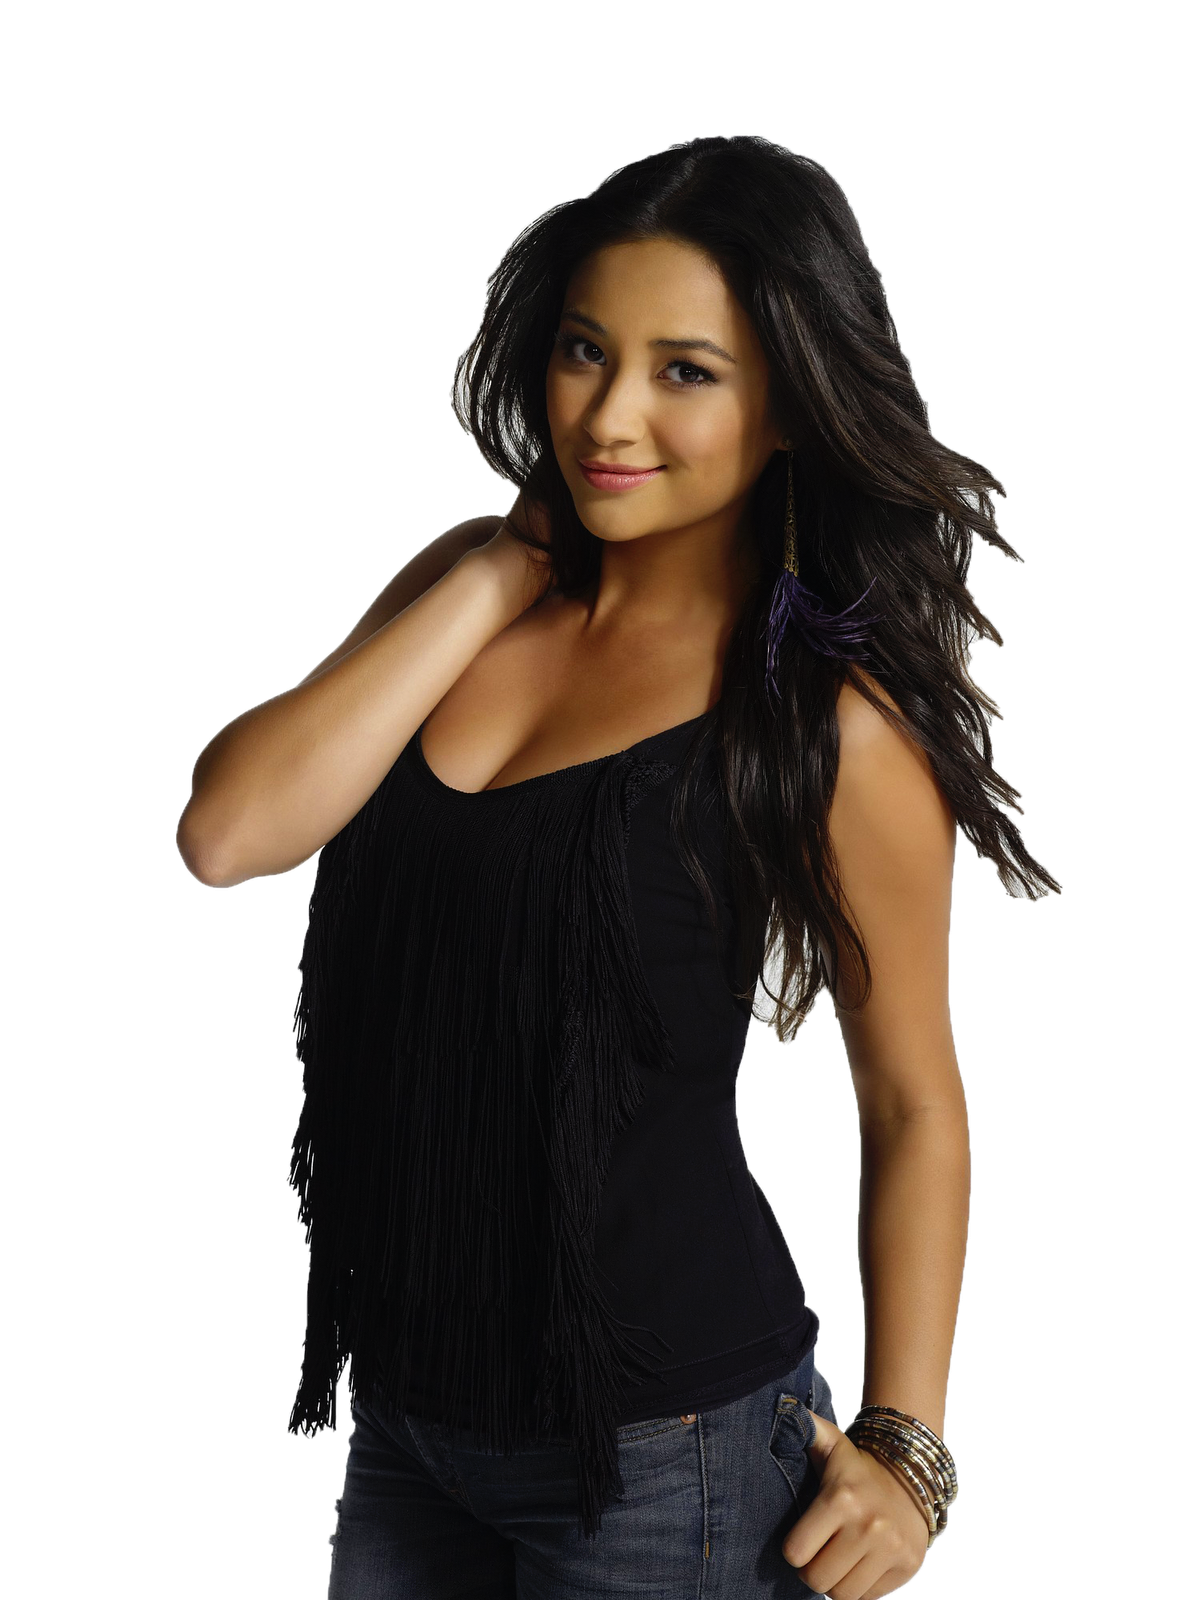 Shay transparent emily fields. Related image pinterest